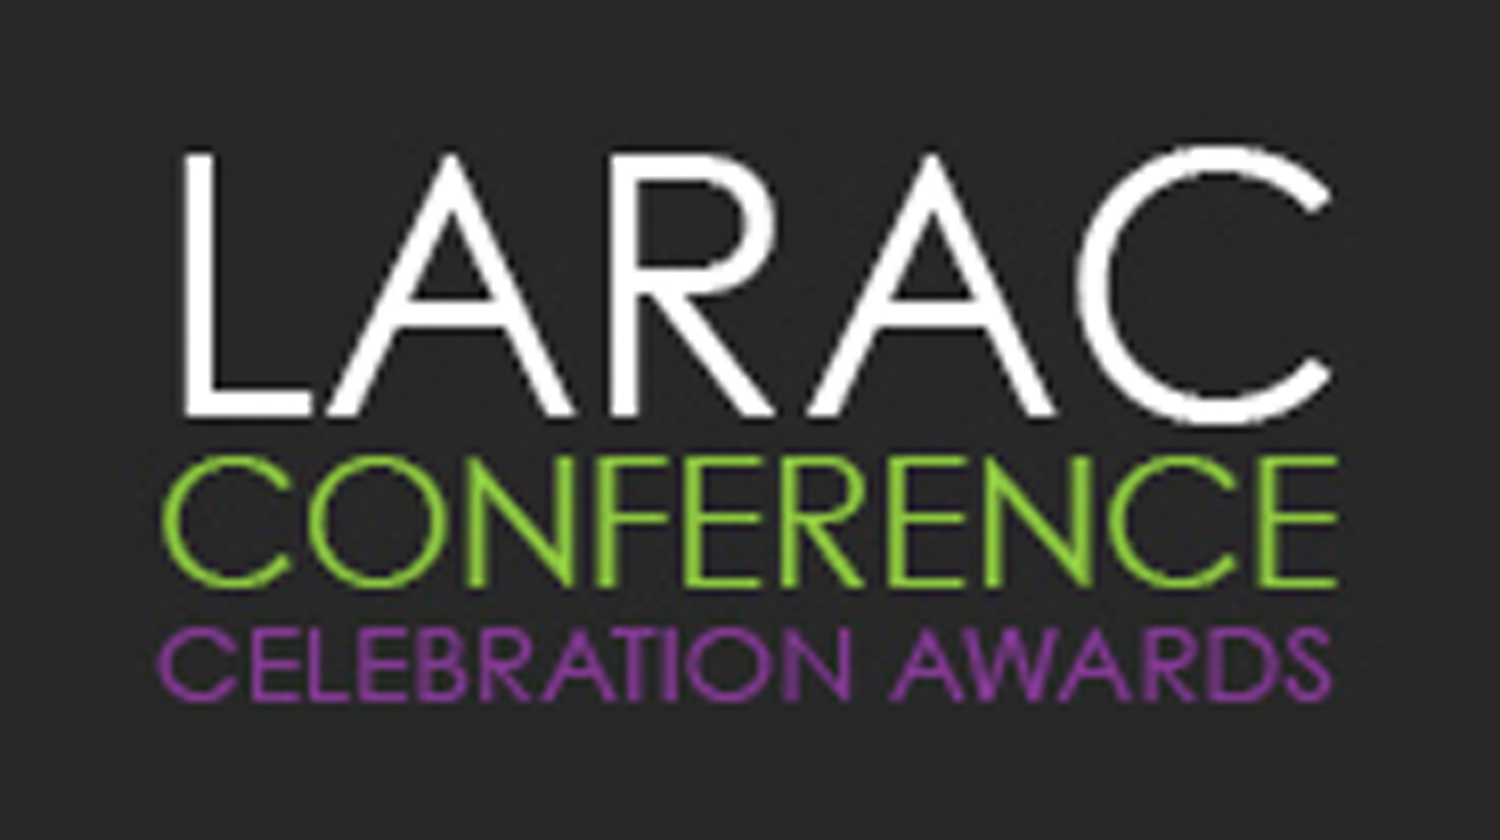 LARAC, Recycling Officer of the Year Award